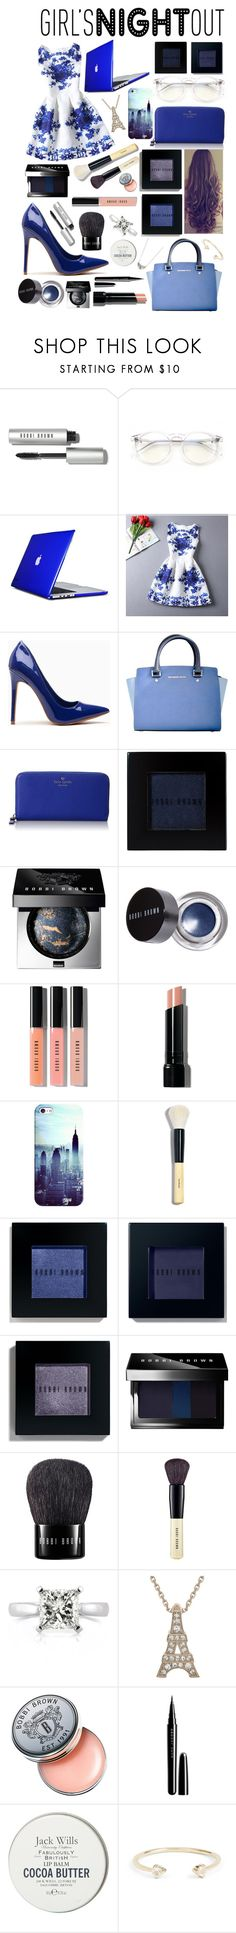 """Girls night out! #103"" by worldofflowers ❤ liked on Polyvore featuring Bobbi Brown Cosmetics, Wildfox, Speck, Rainbeam, Michael Kors, Kate Spade, Casetify, Mark Broumand, Marc Jacobs and Jack Wills"